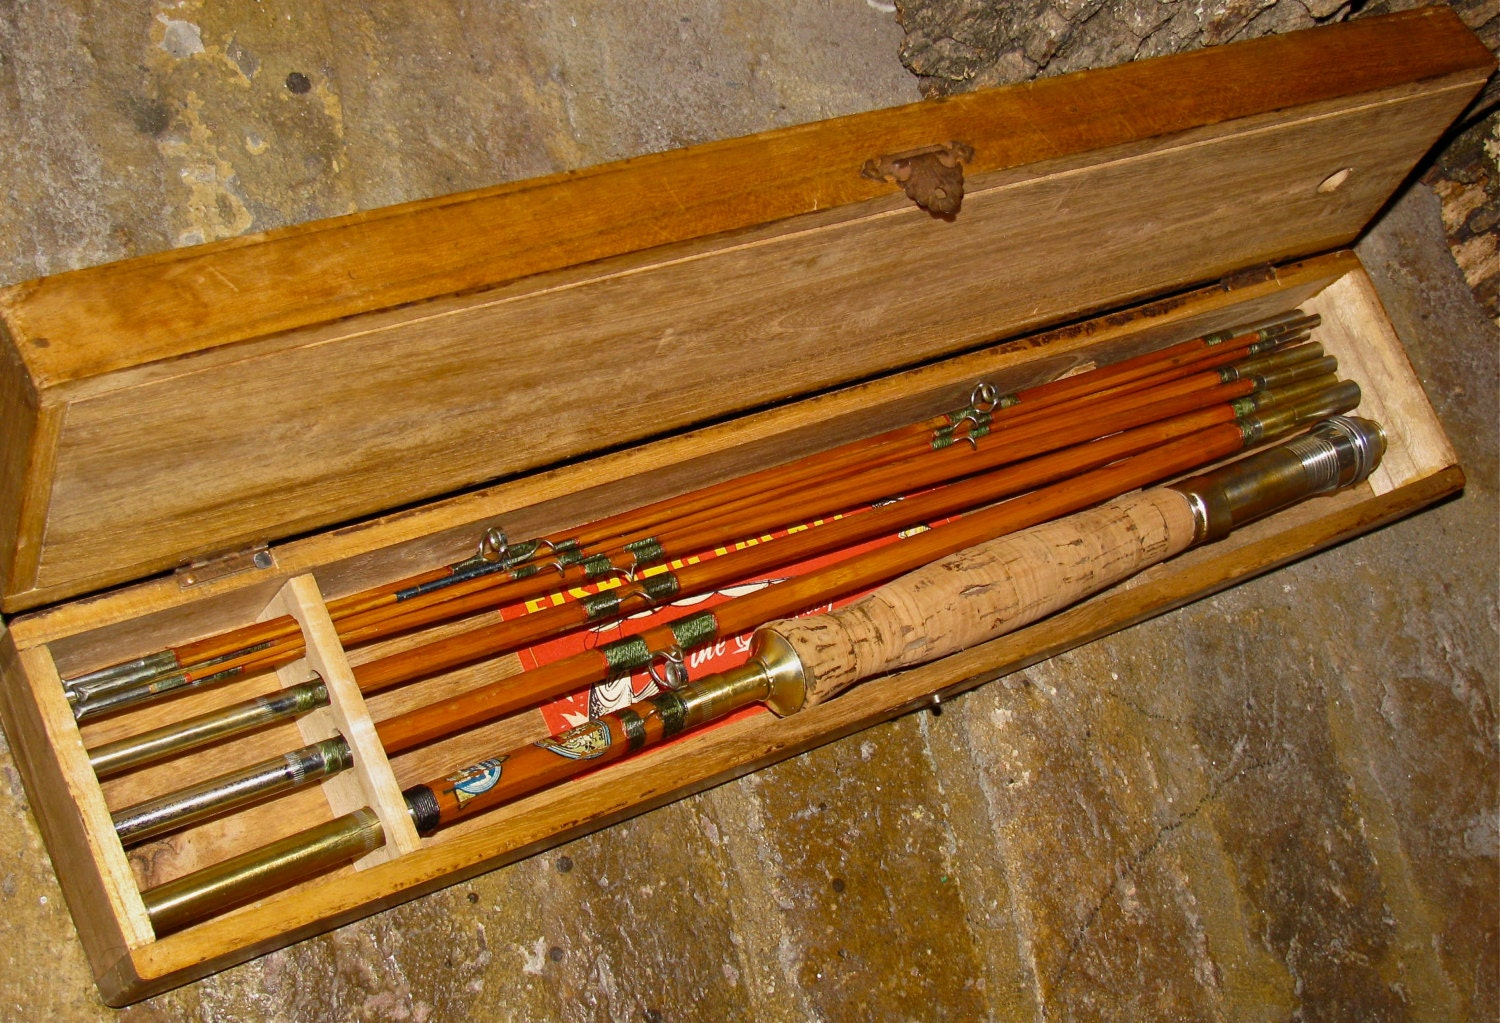 Vintage bamboo fly fishing rod wooden box by for Old fishing rods